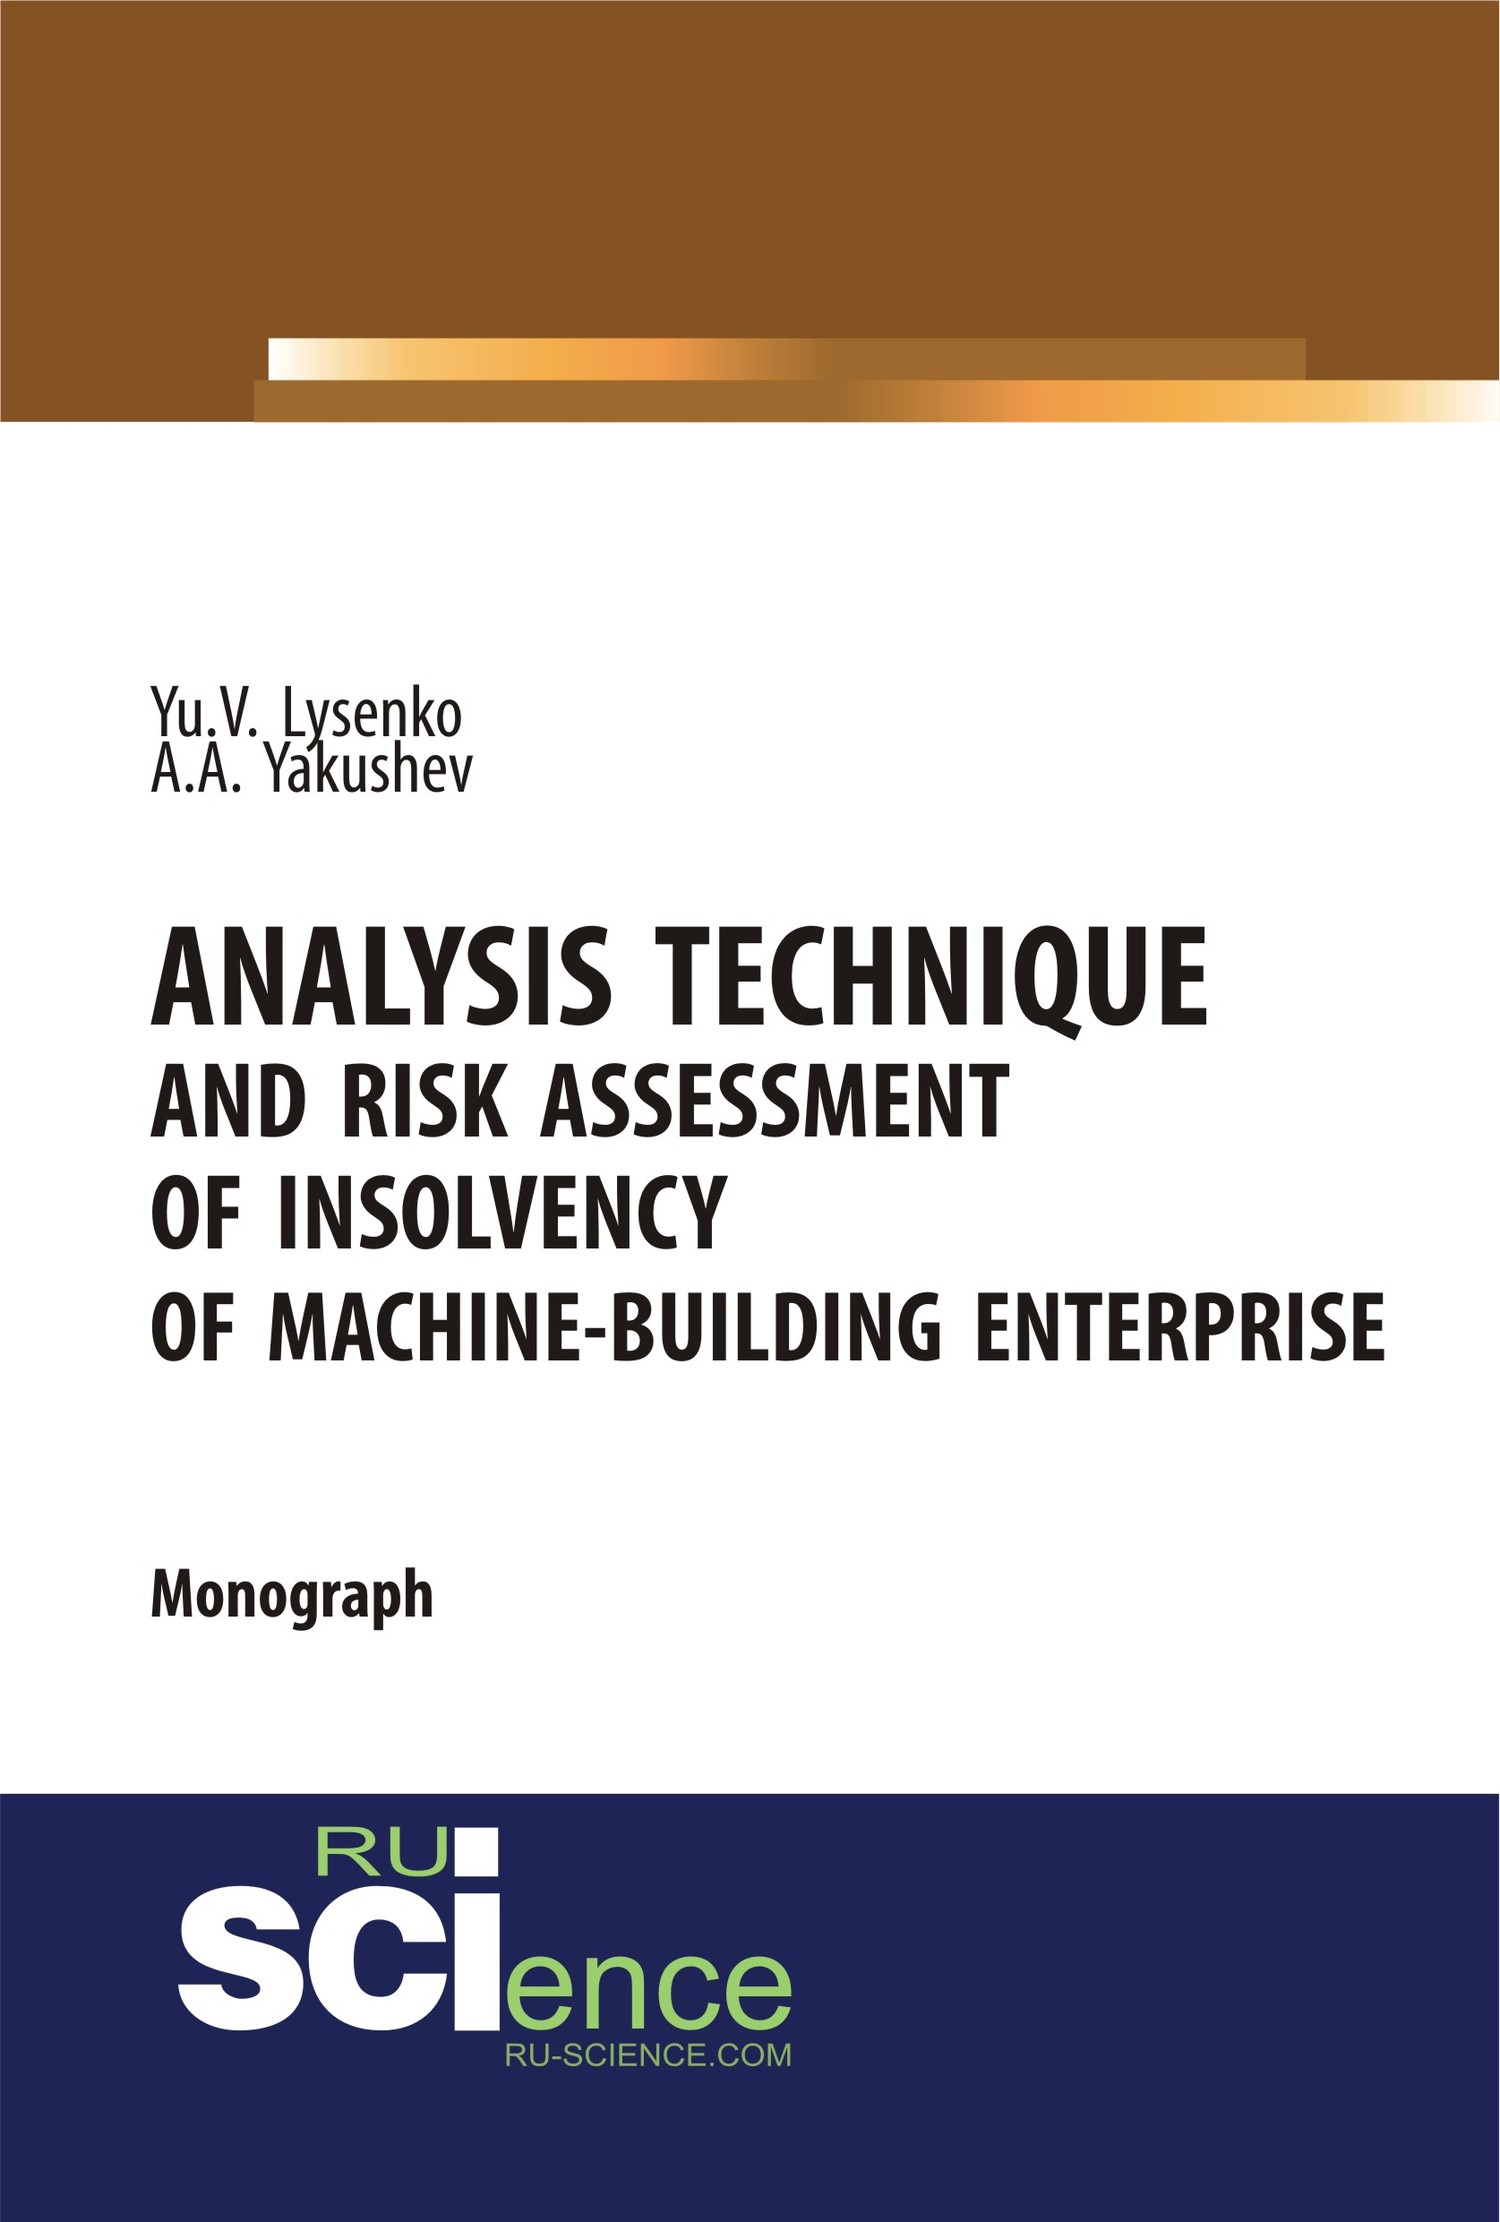 Ю. В. Лысенко Analysis technique and risk assessment of insolvency of machine-building enterprise efficiency of pig farm production in the republic of macedonia